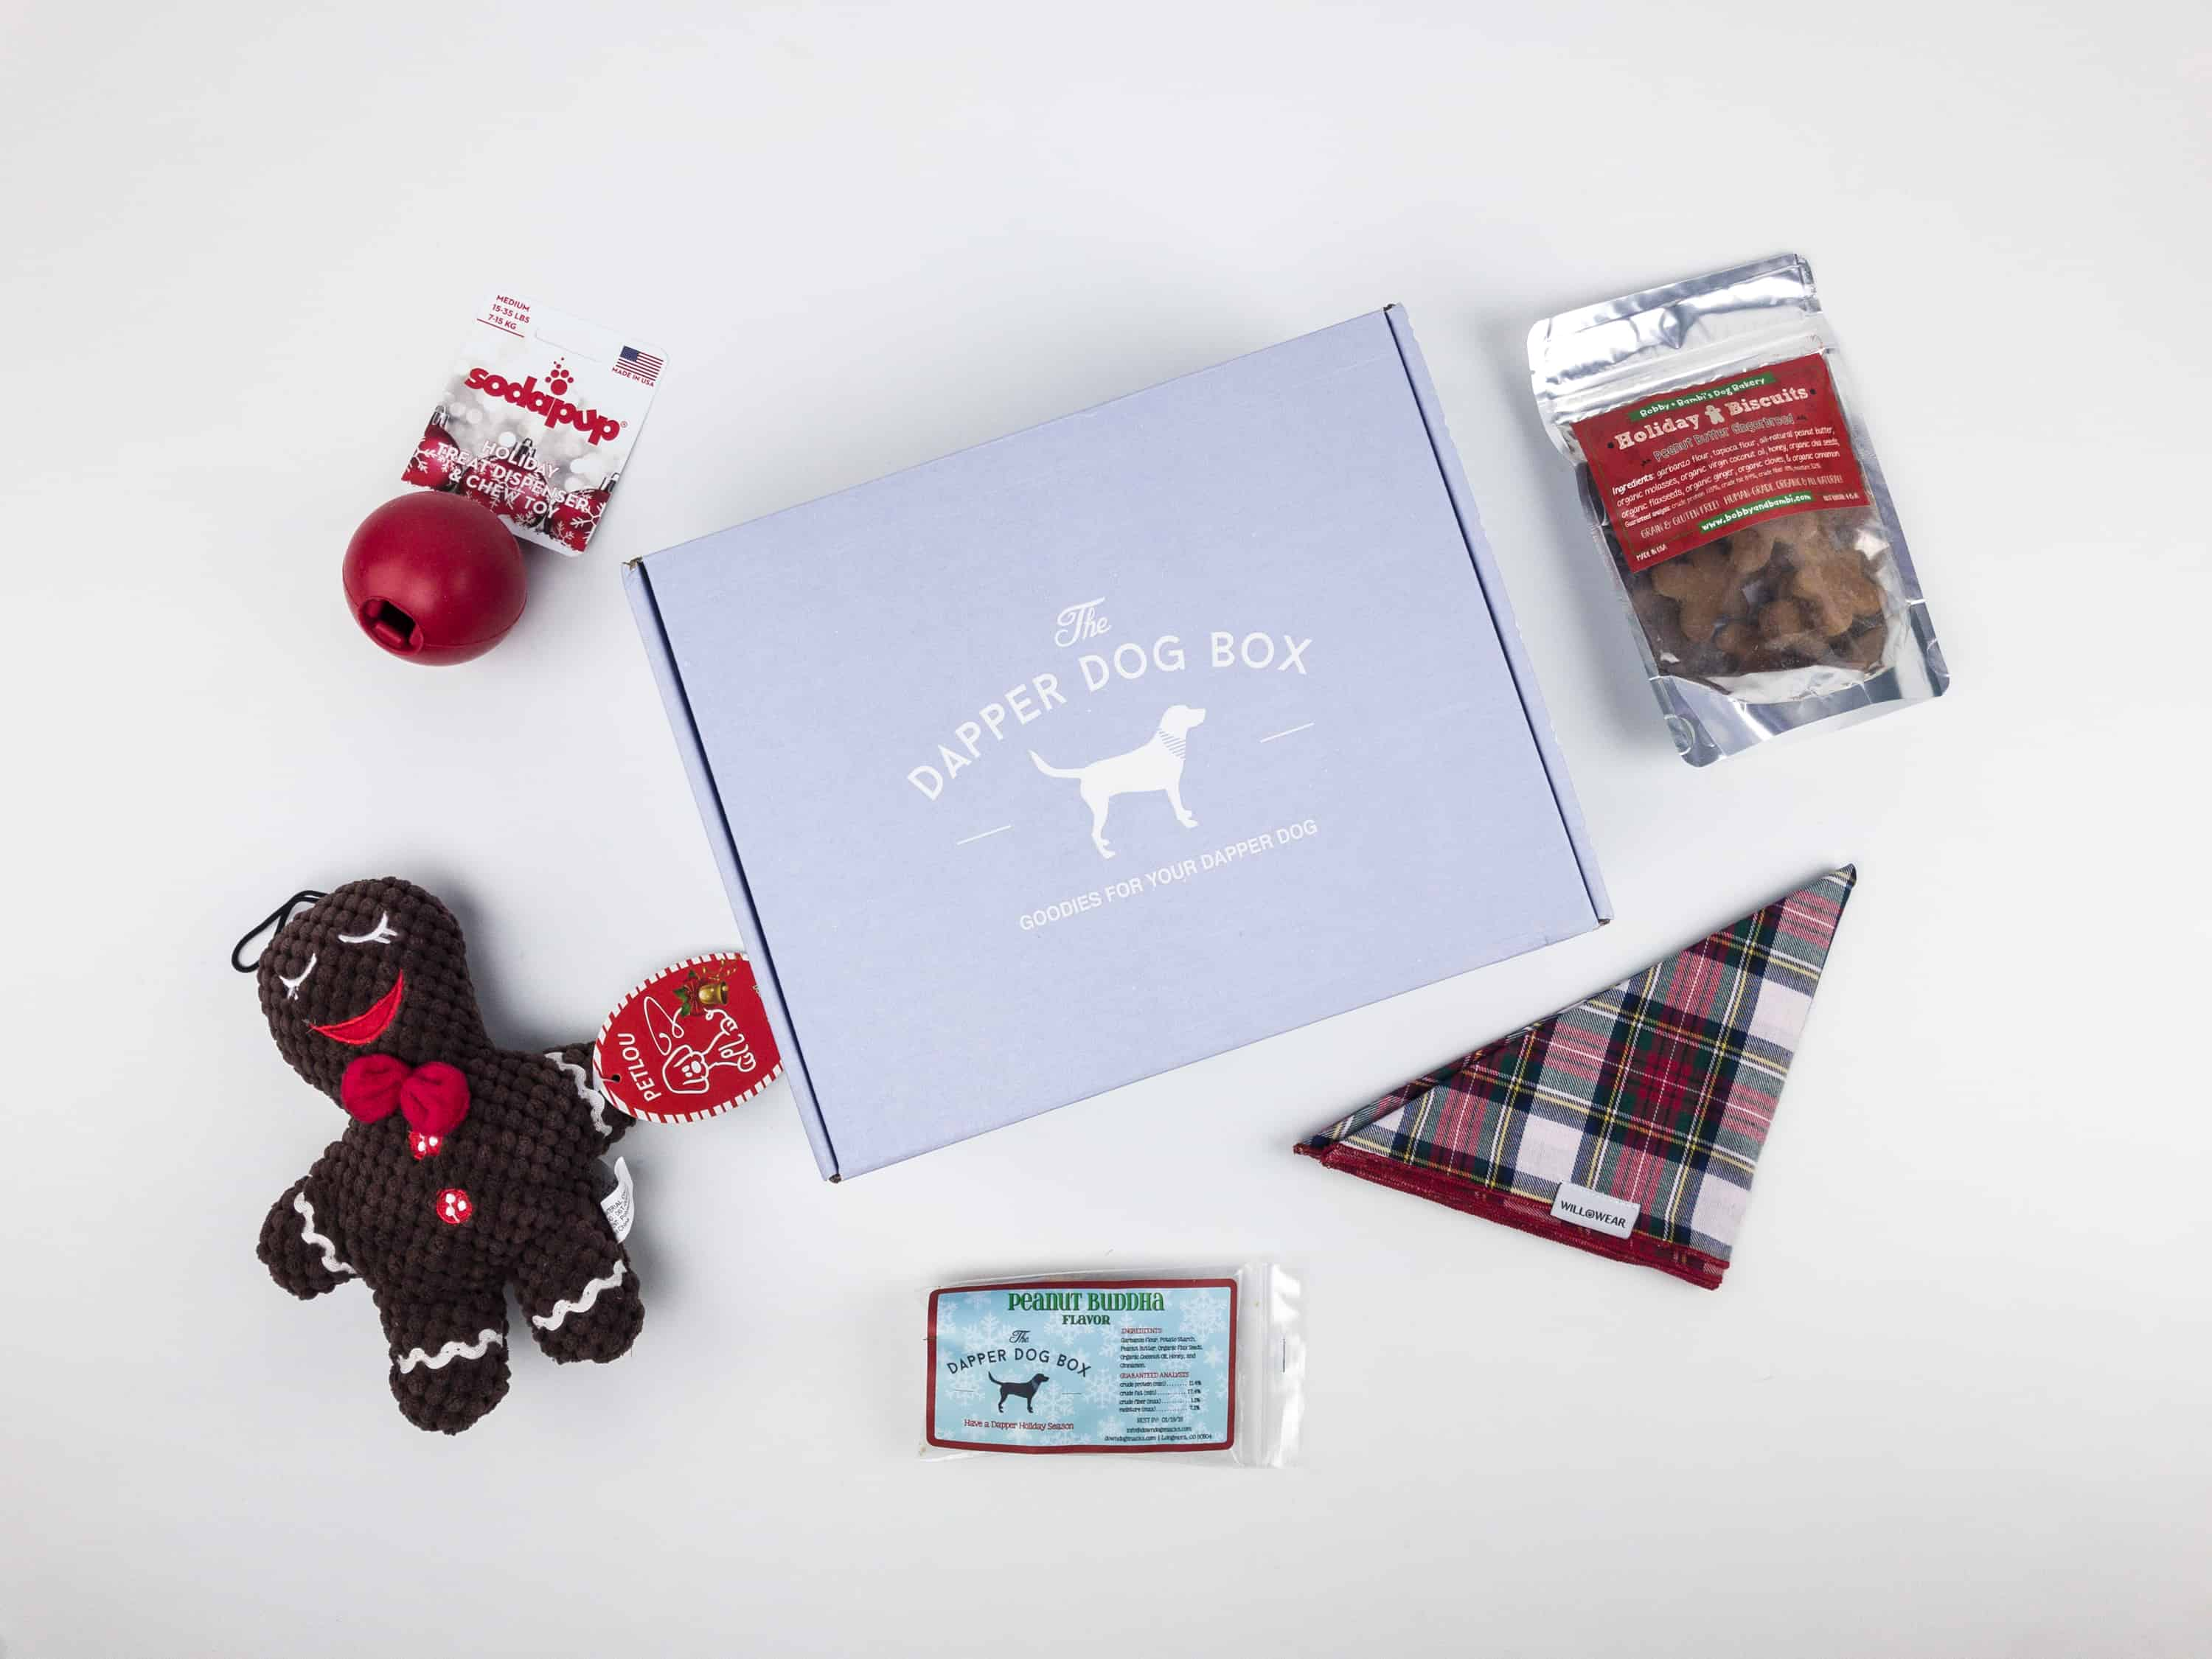 The Dapper Dog Box December 2017 Subscription Box Review + Coupon